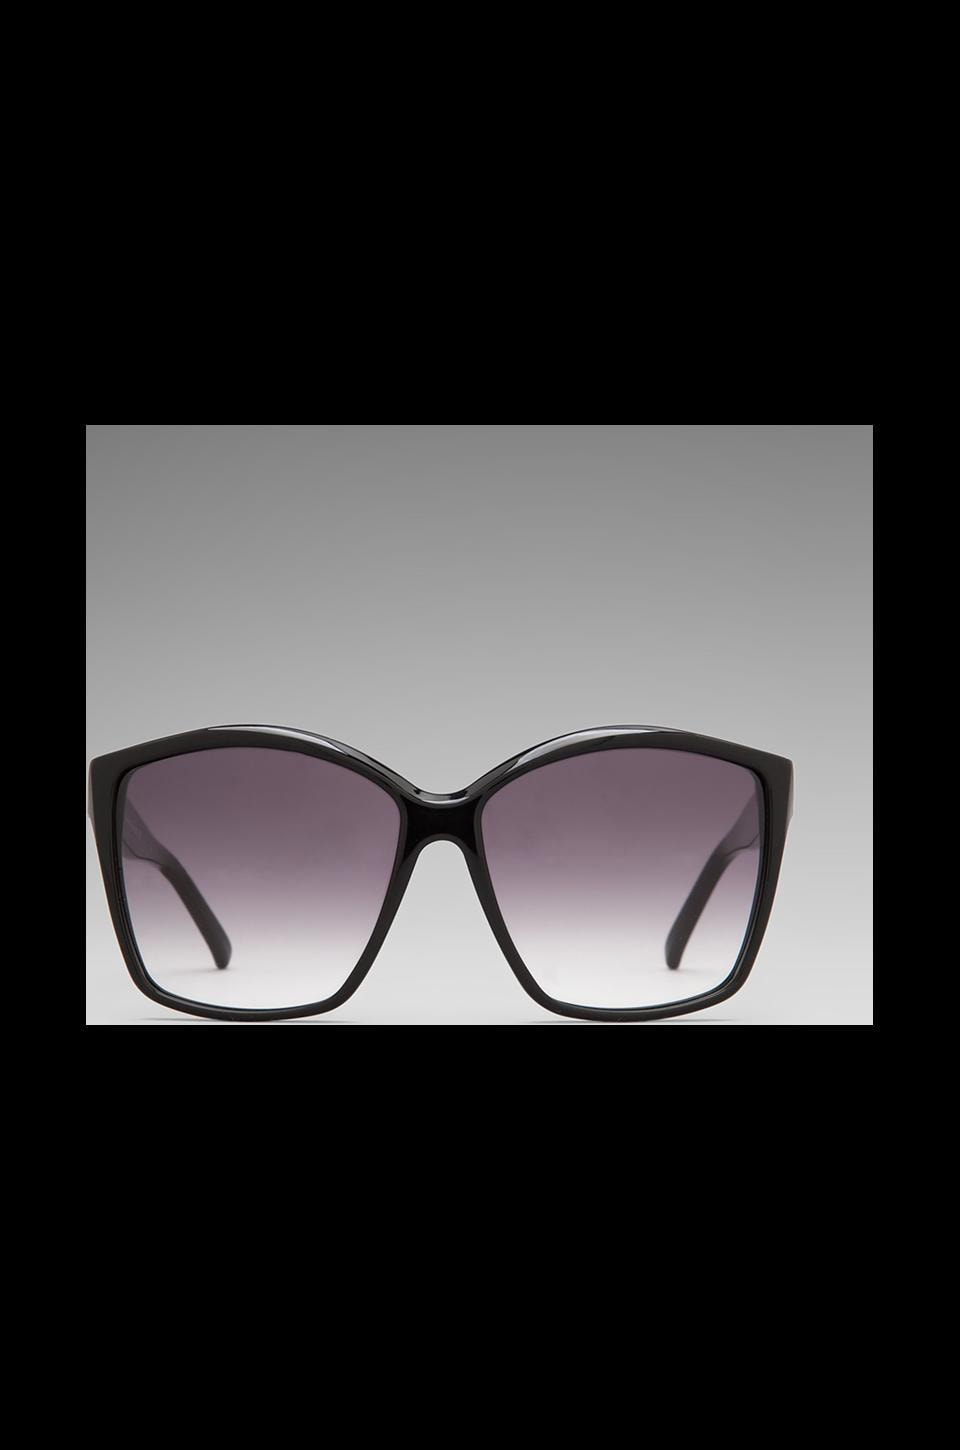 House of Harlow 1960 House of Harlow Jordana Sunglasses in Black Gradient